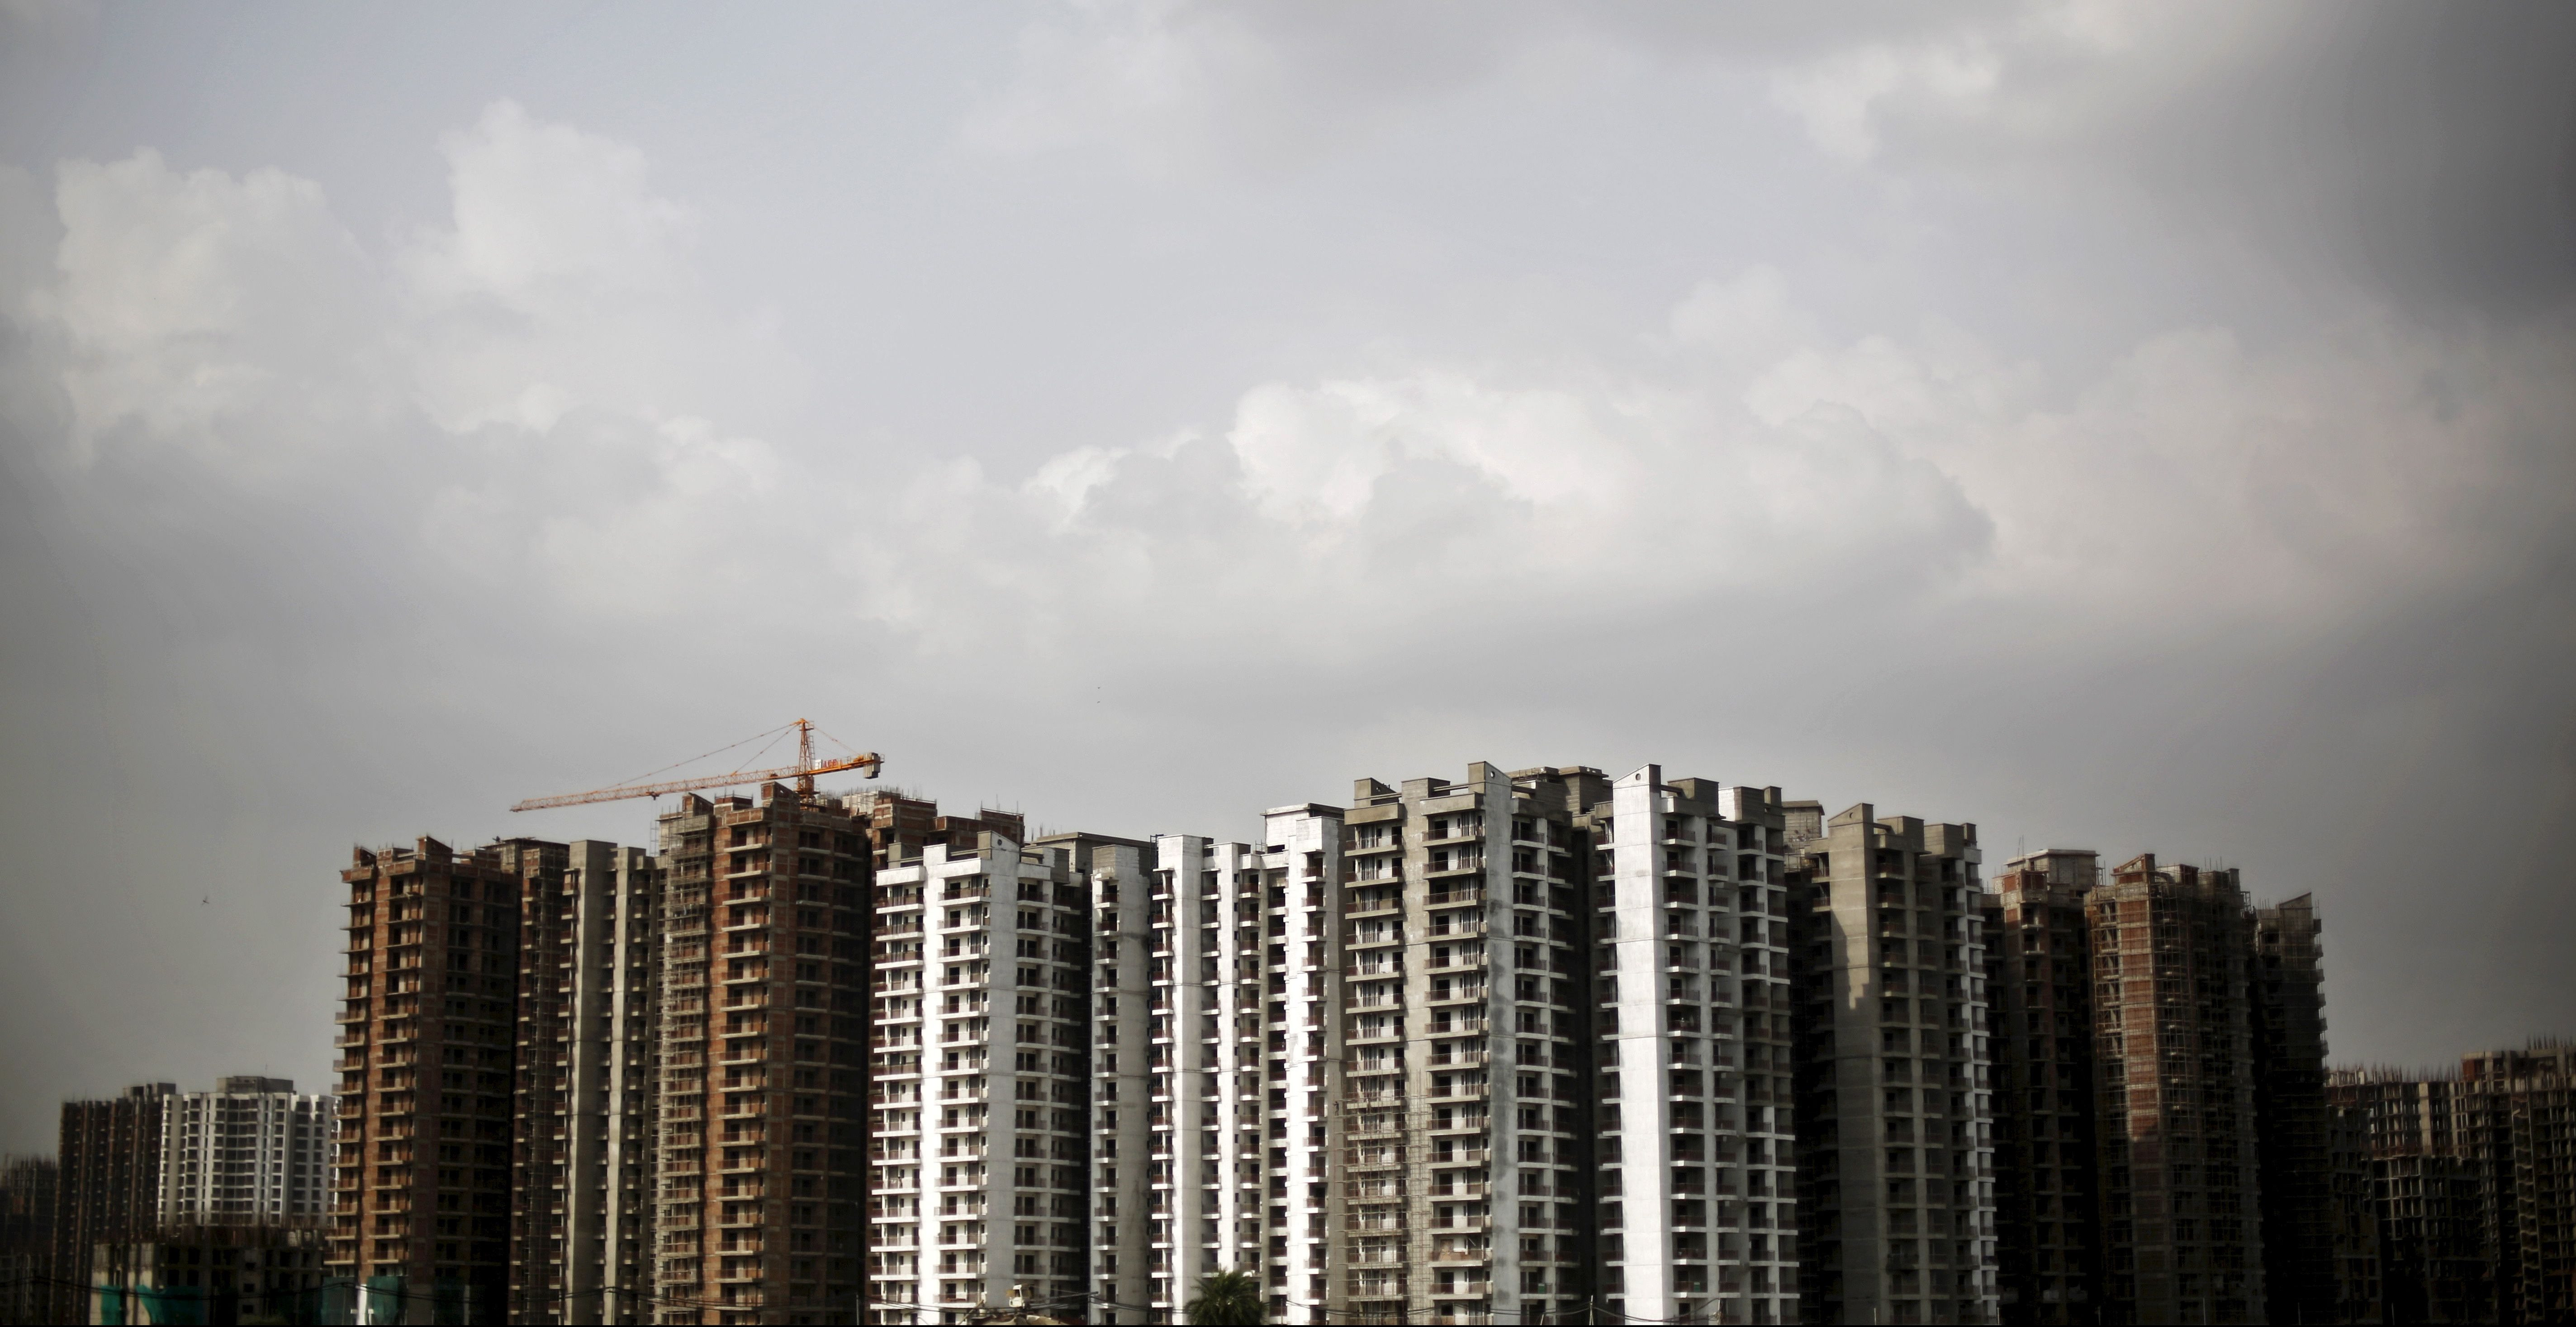 A view shows a residential complex that is under construction in Noida on the outskirts of New Delhi, India, August 20, 2015. REUTERS/Adnan Abidi/File Photo - RTX2NU28